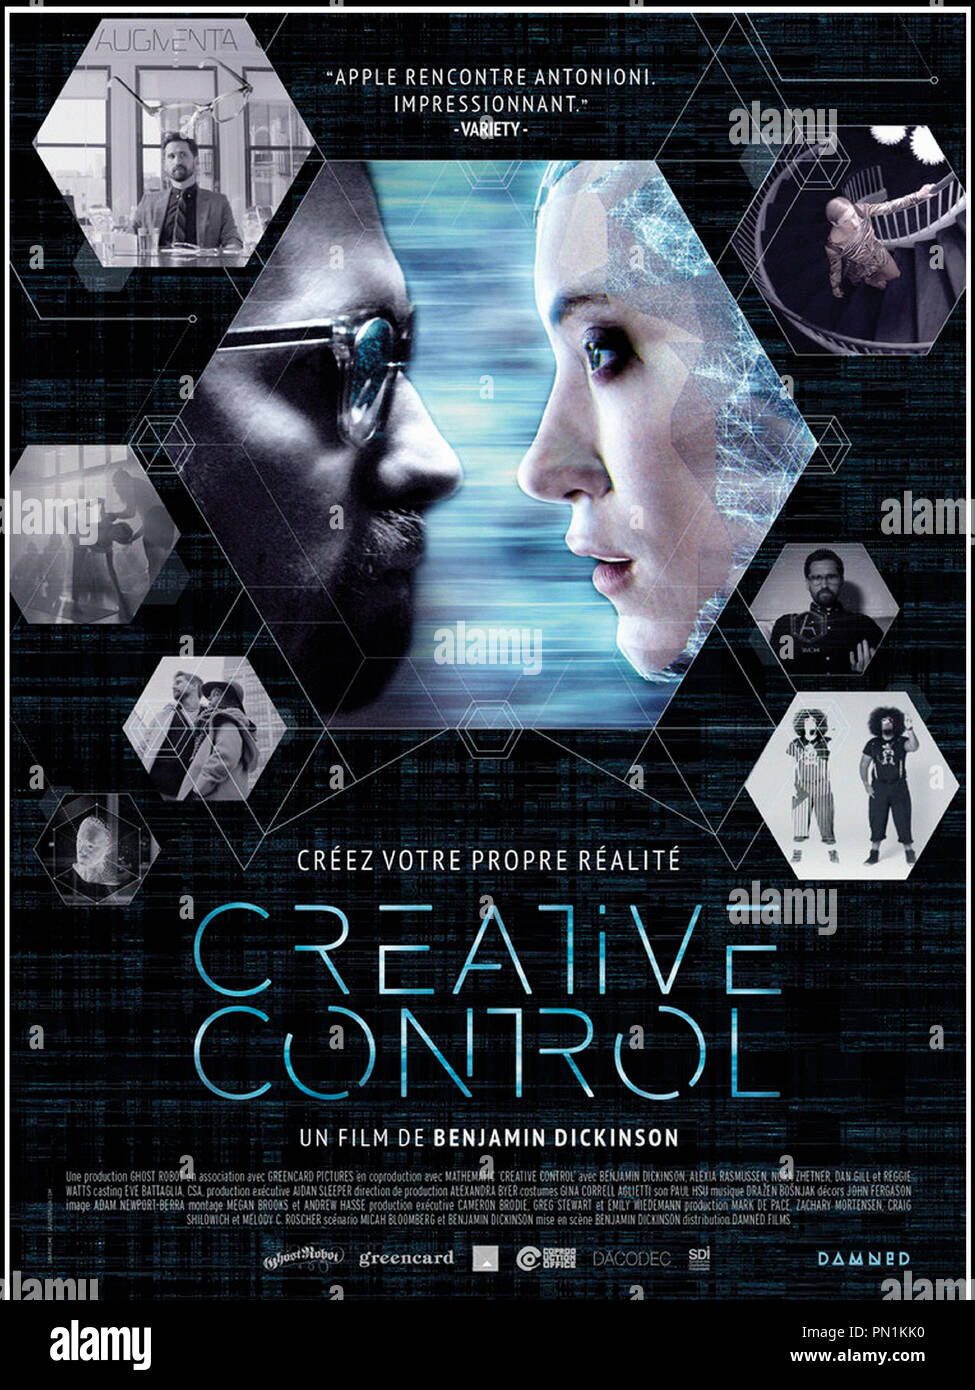 Prod DB © Ghost Robot - Greencard Pictures - Mathematic / DR CREATIVE CONTROL de Benjamin Dickinson 2015 USA affiche française science fiction - Stock Image